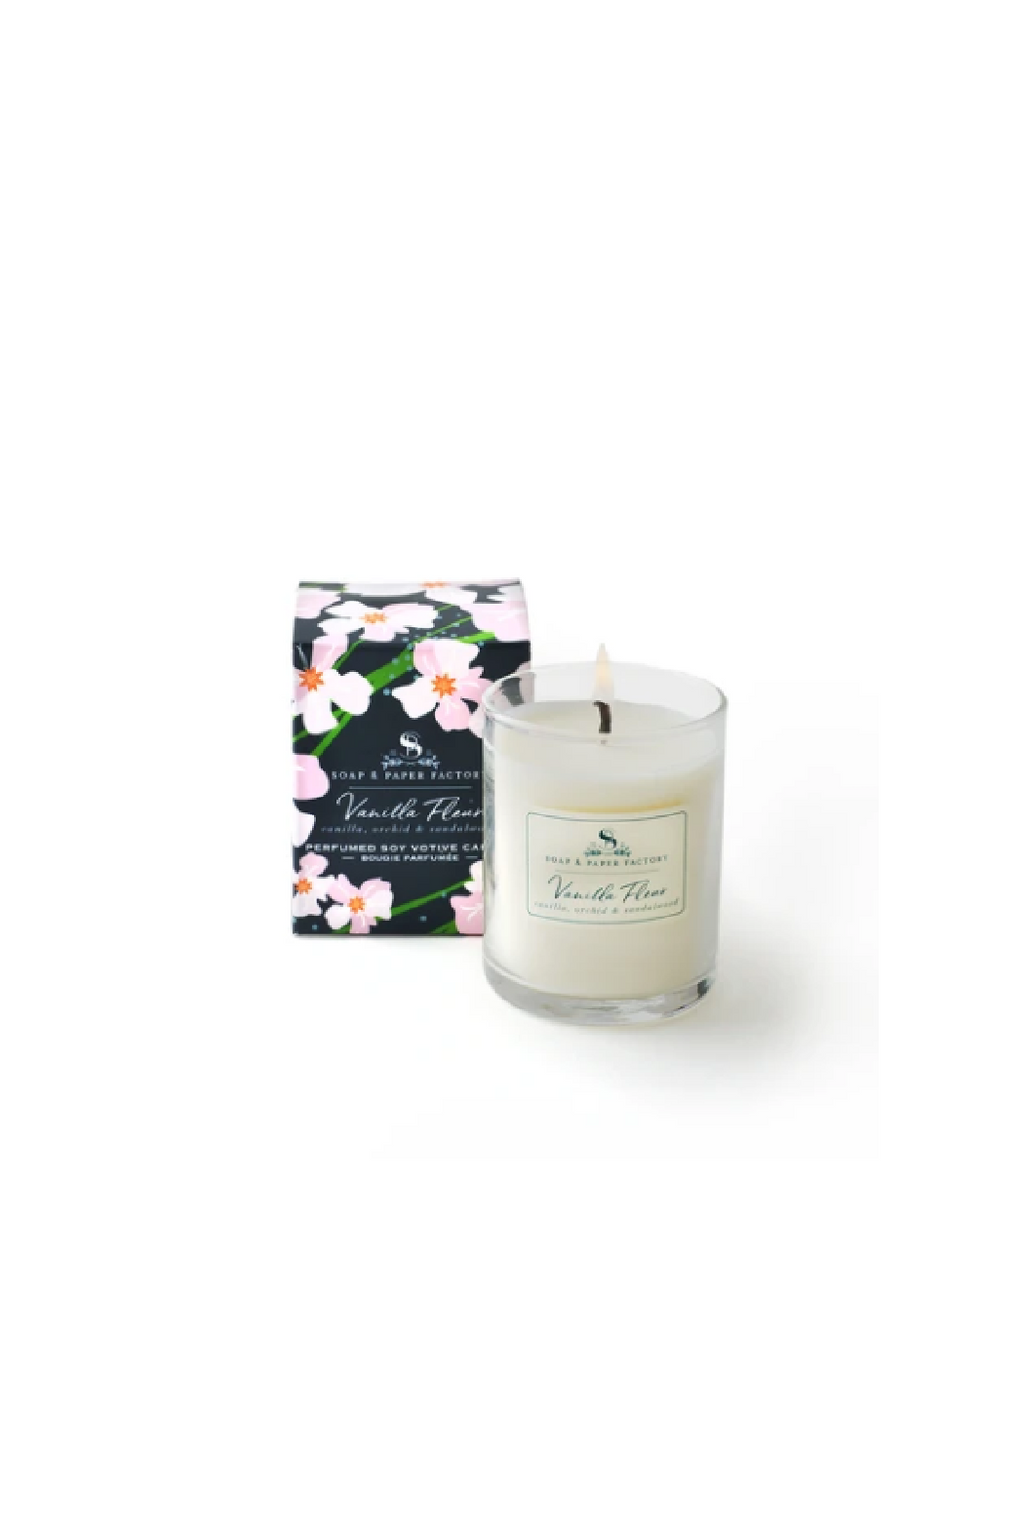 The Soap & Paper Factory Vanilla Fleur 2.4 oz. Votive Candle